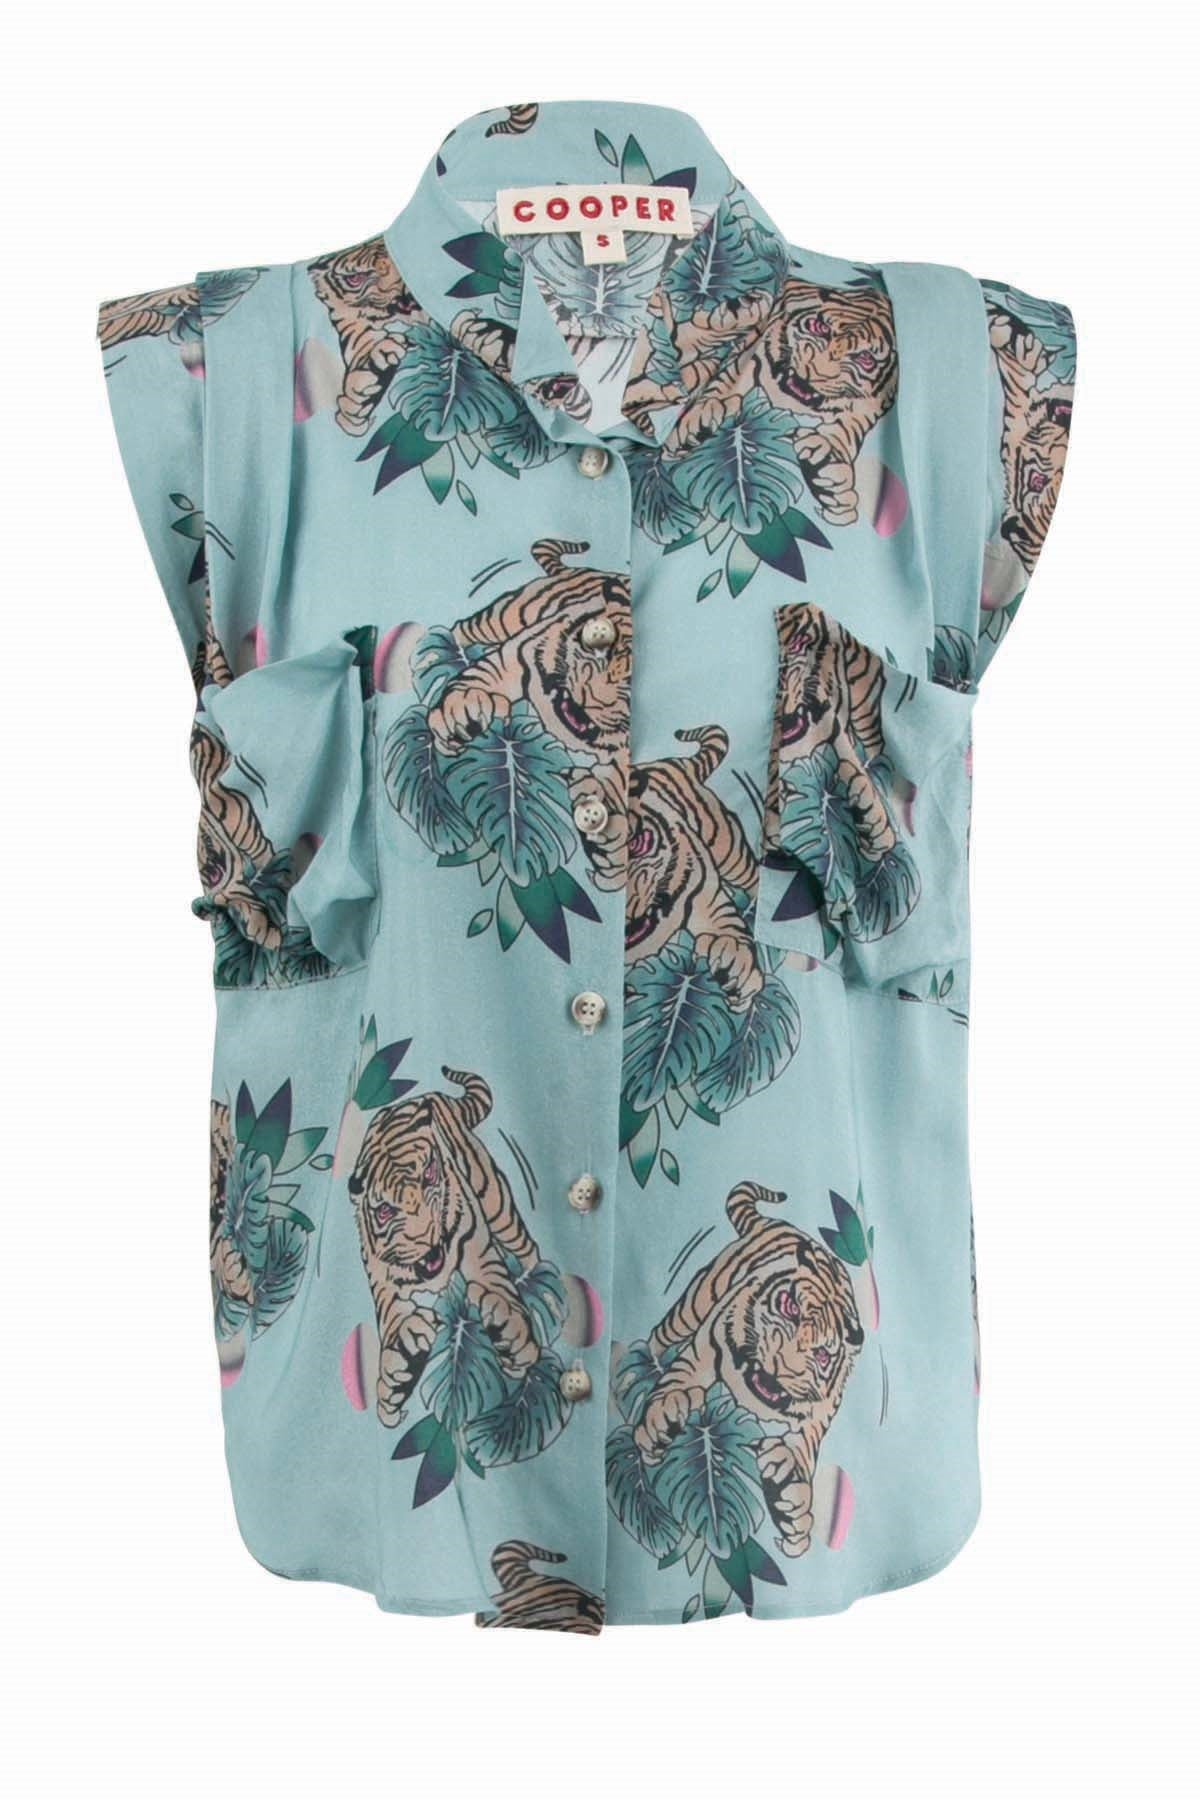 Another Mai Tie Top Cooper trelise Cooper Stockists Shop Online New Zealand Designer Clothing Auckland Parnell Summer